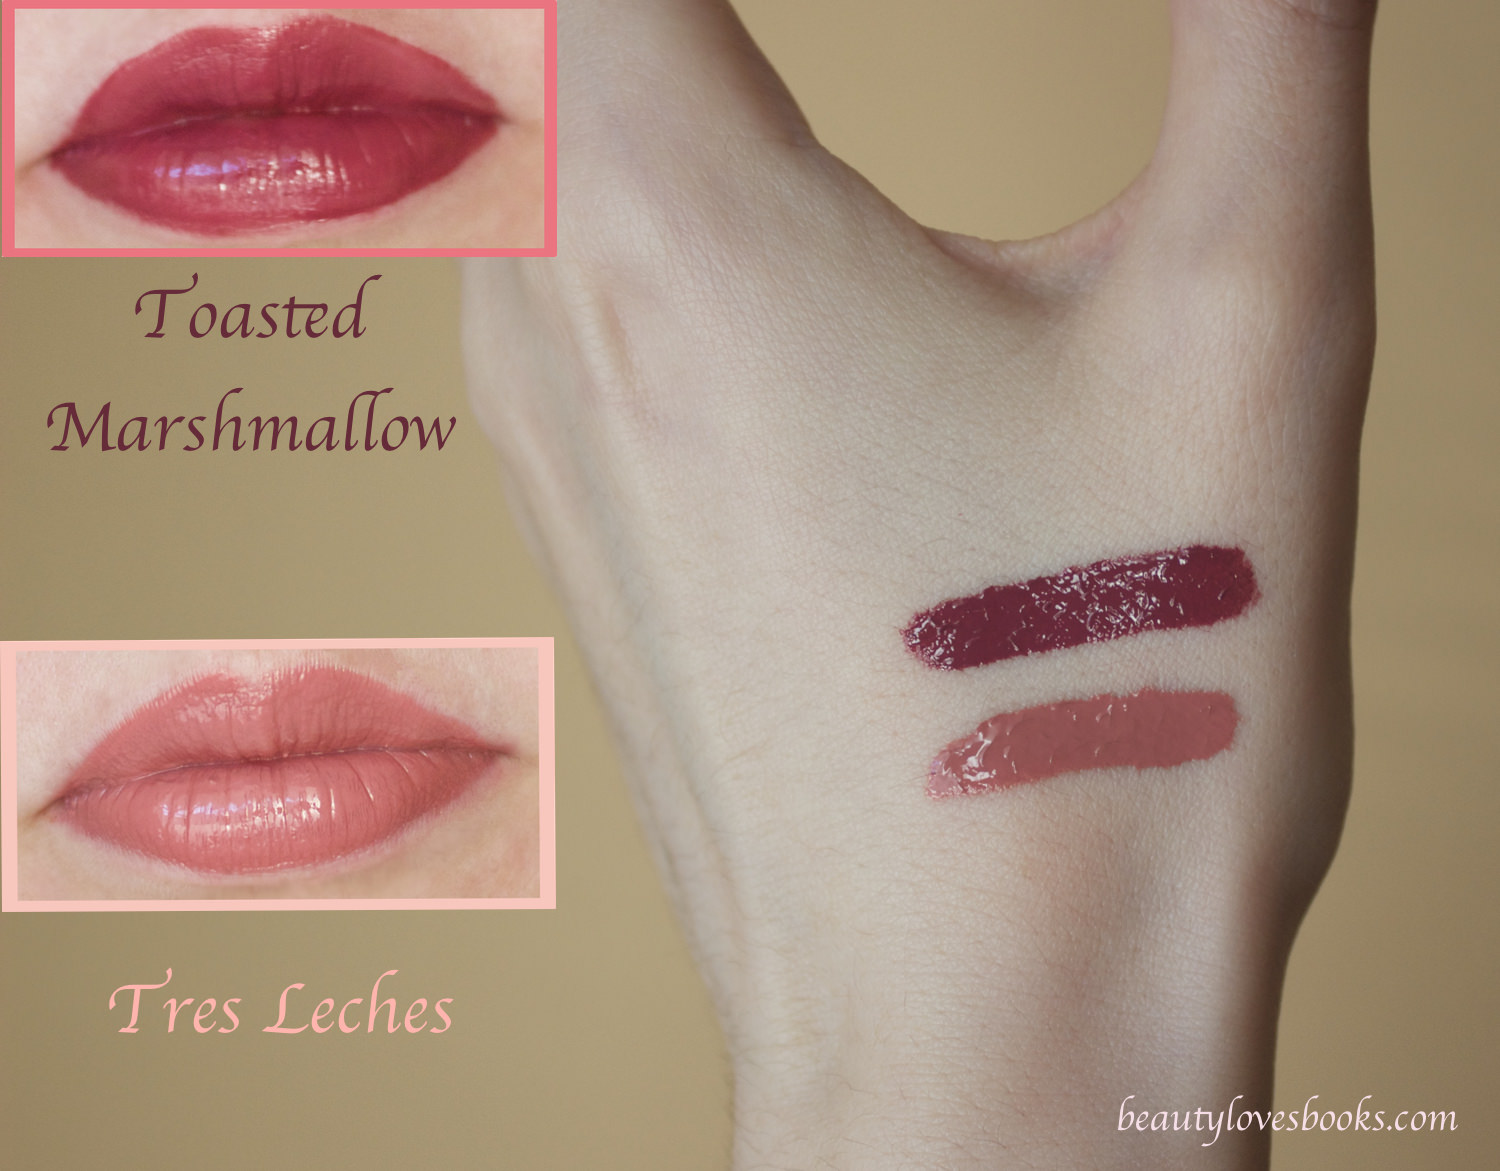 NYX Intense Butter glosses in Tres Leches and Toasted Marshmallow swatches